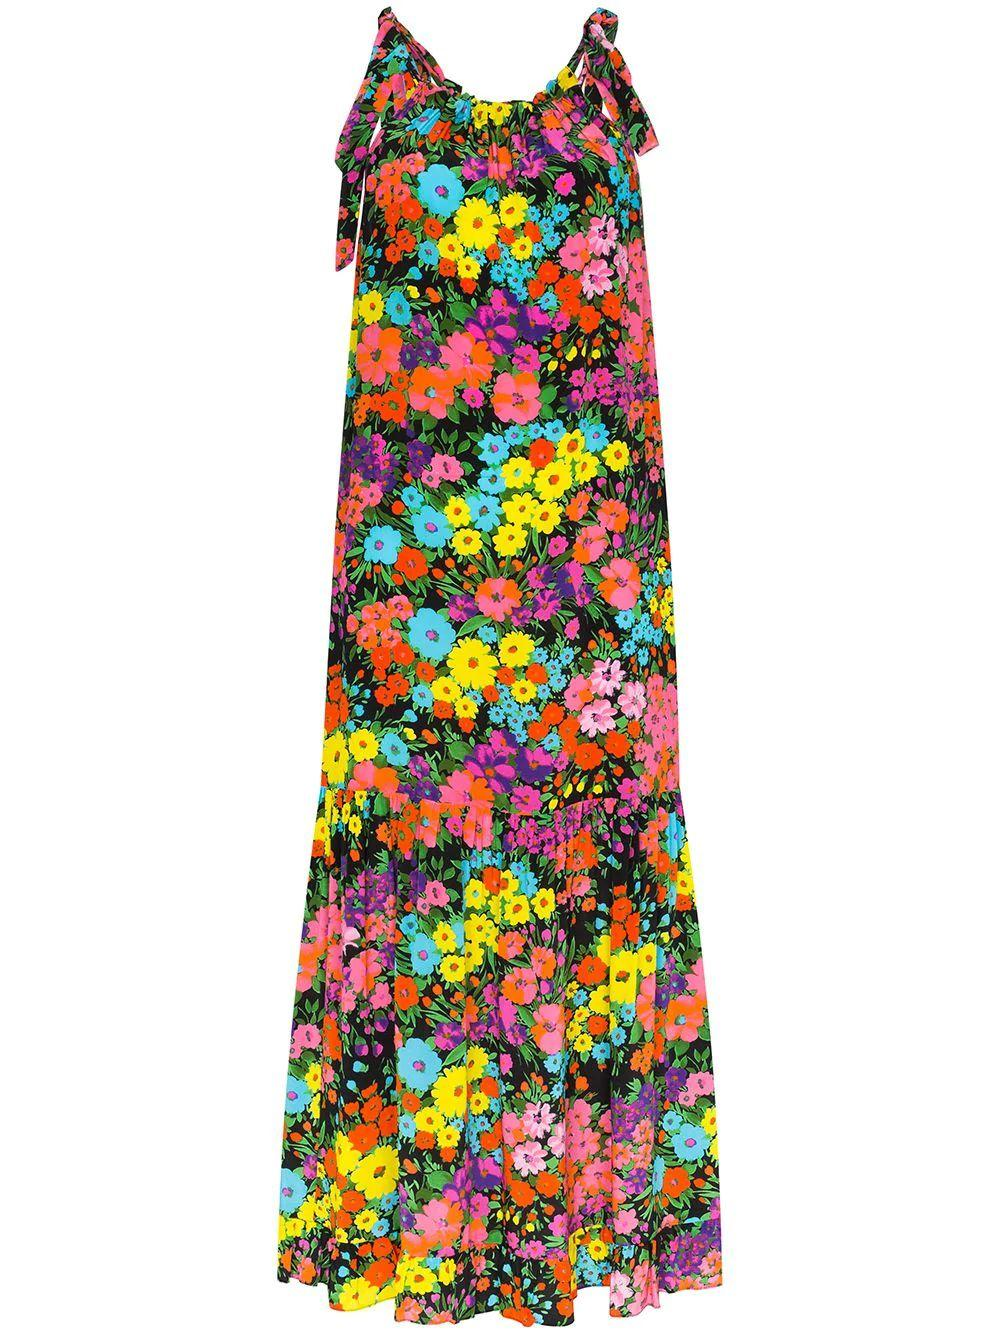 Bow Tie Kaleidiscope Garden Maxi Dress